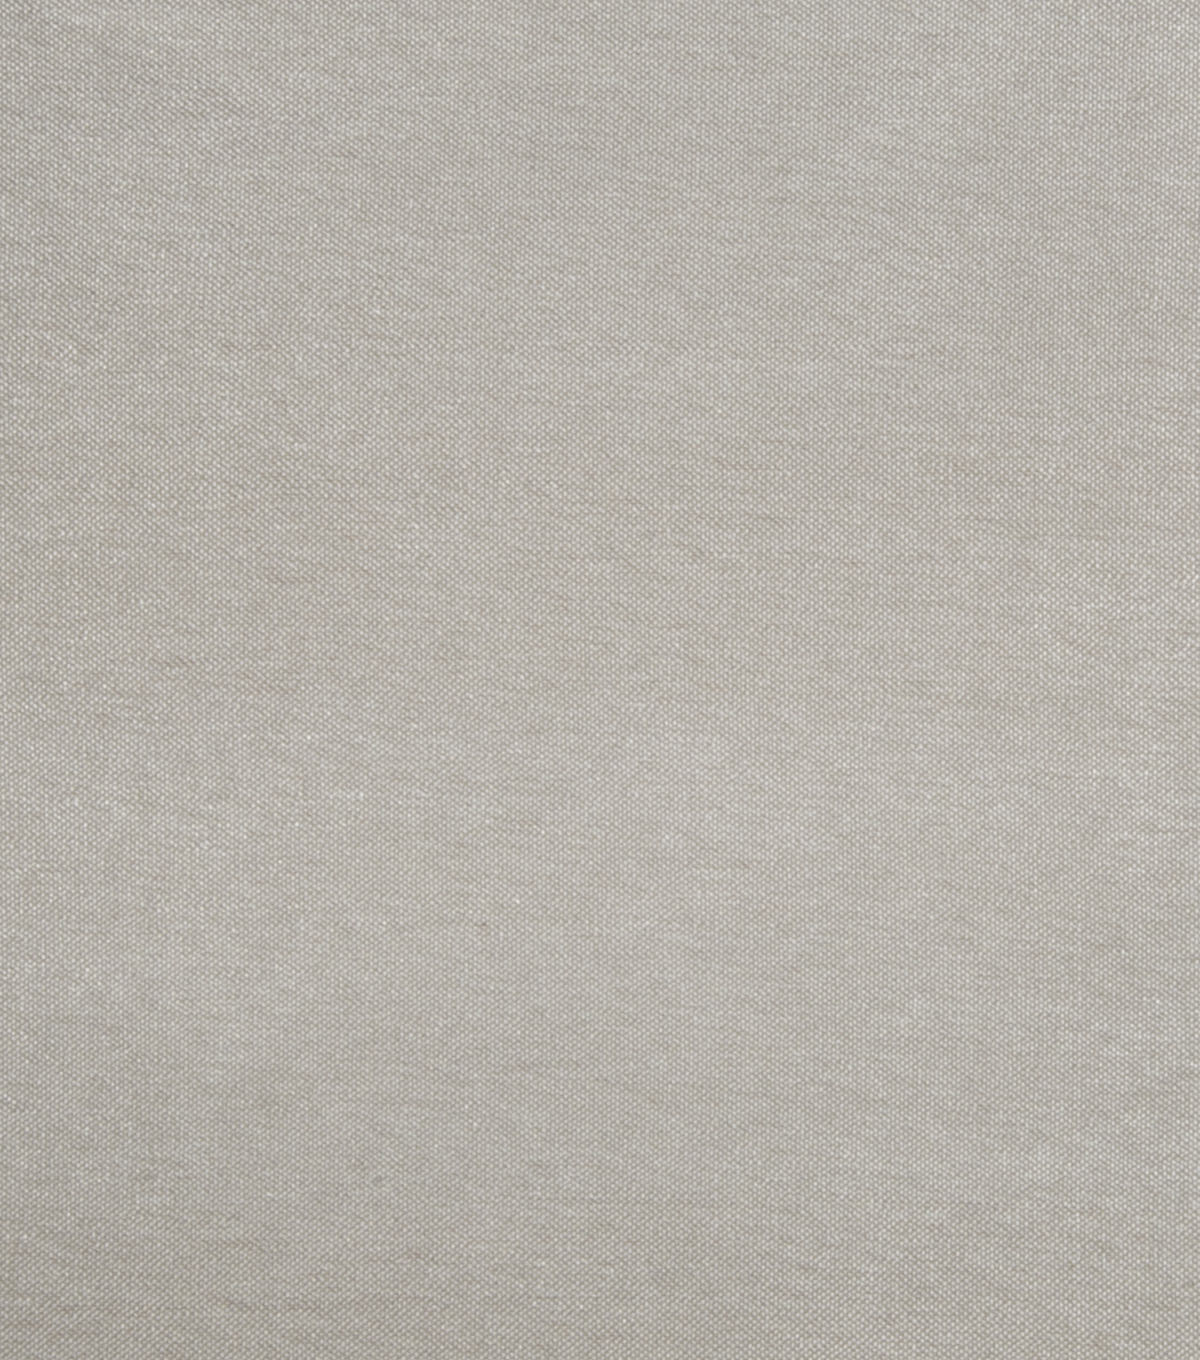 Home Decor 8\u0022x8\u0022 Fabric Swatch-Jaclyn Smith Cobblestone Boucle Mist